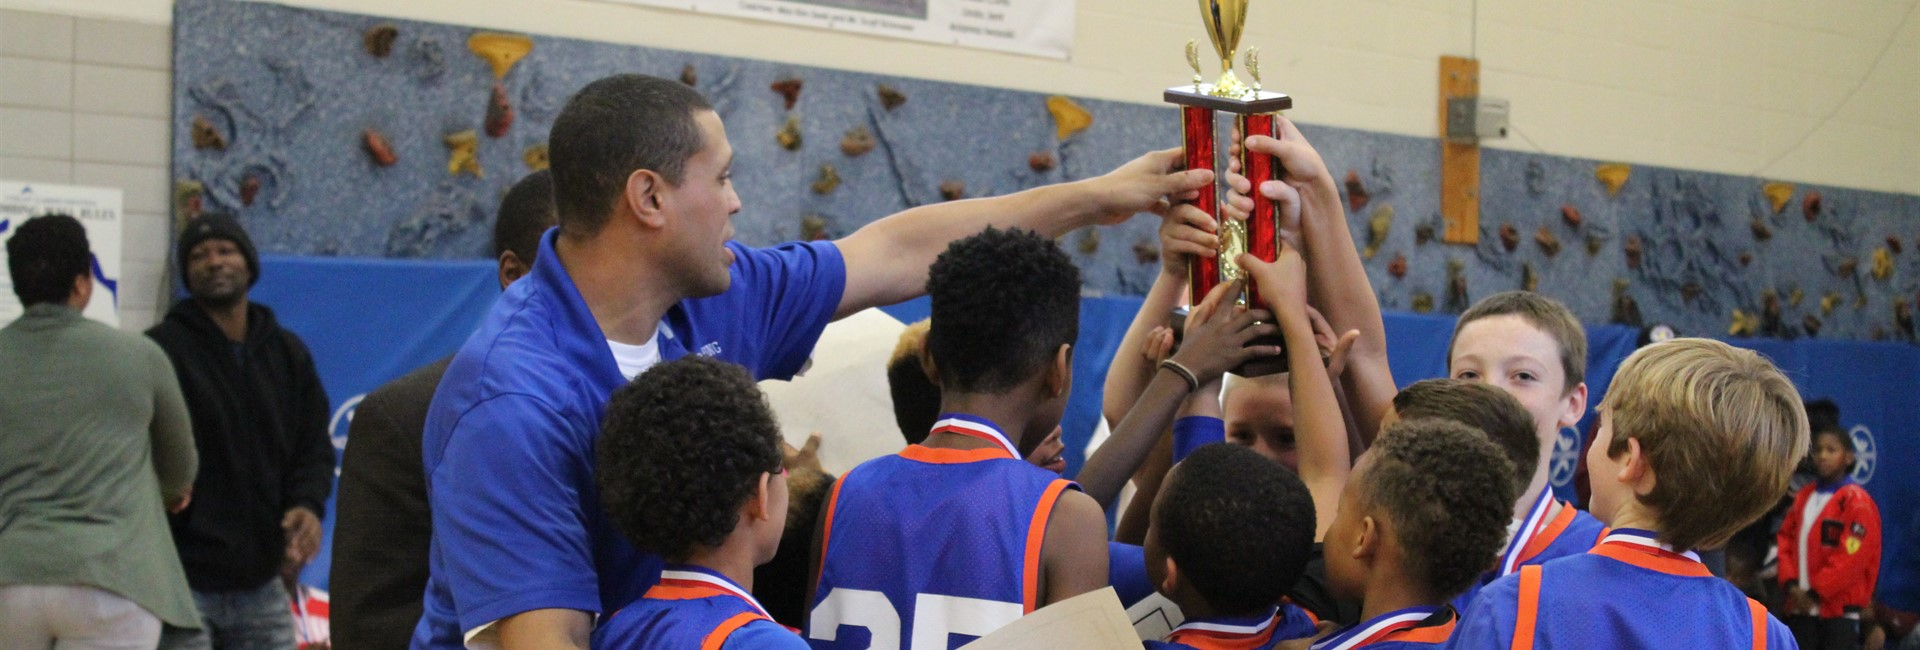 Glenn O. Swing's boys' basketball team wins the championship.